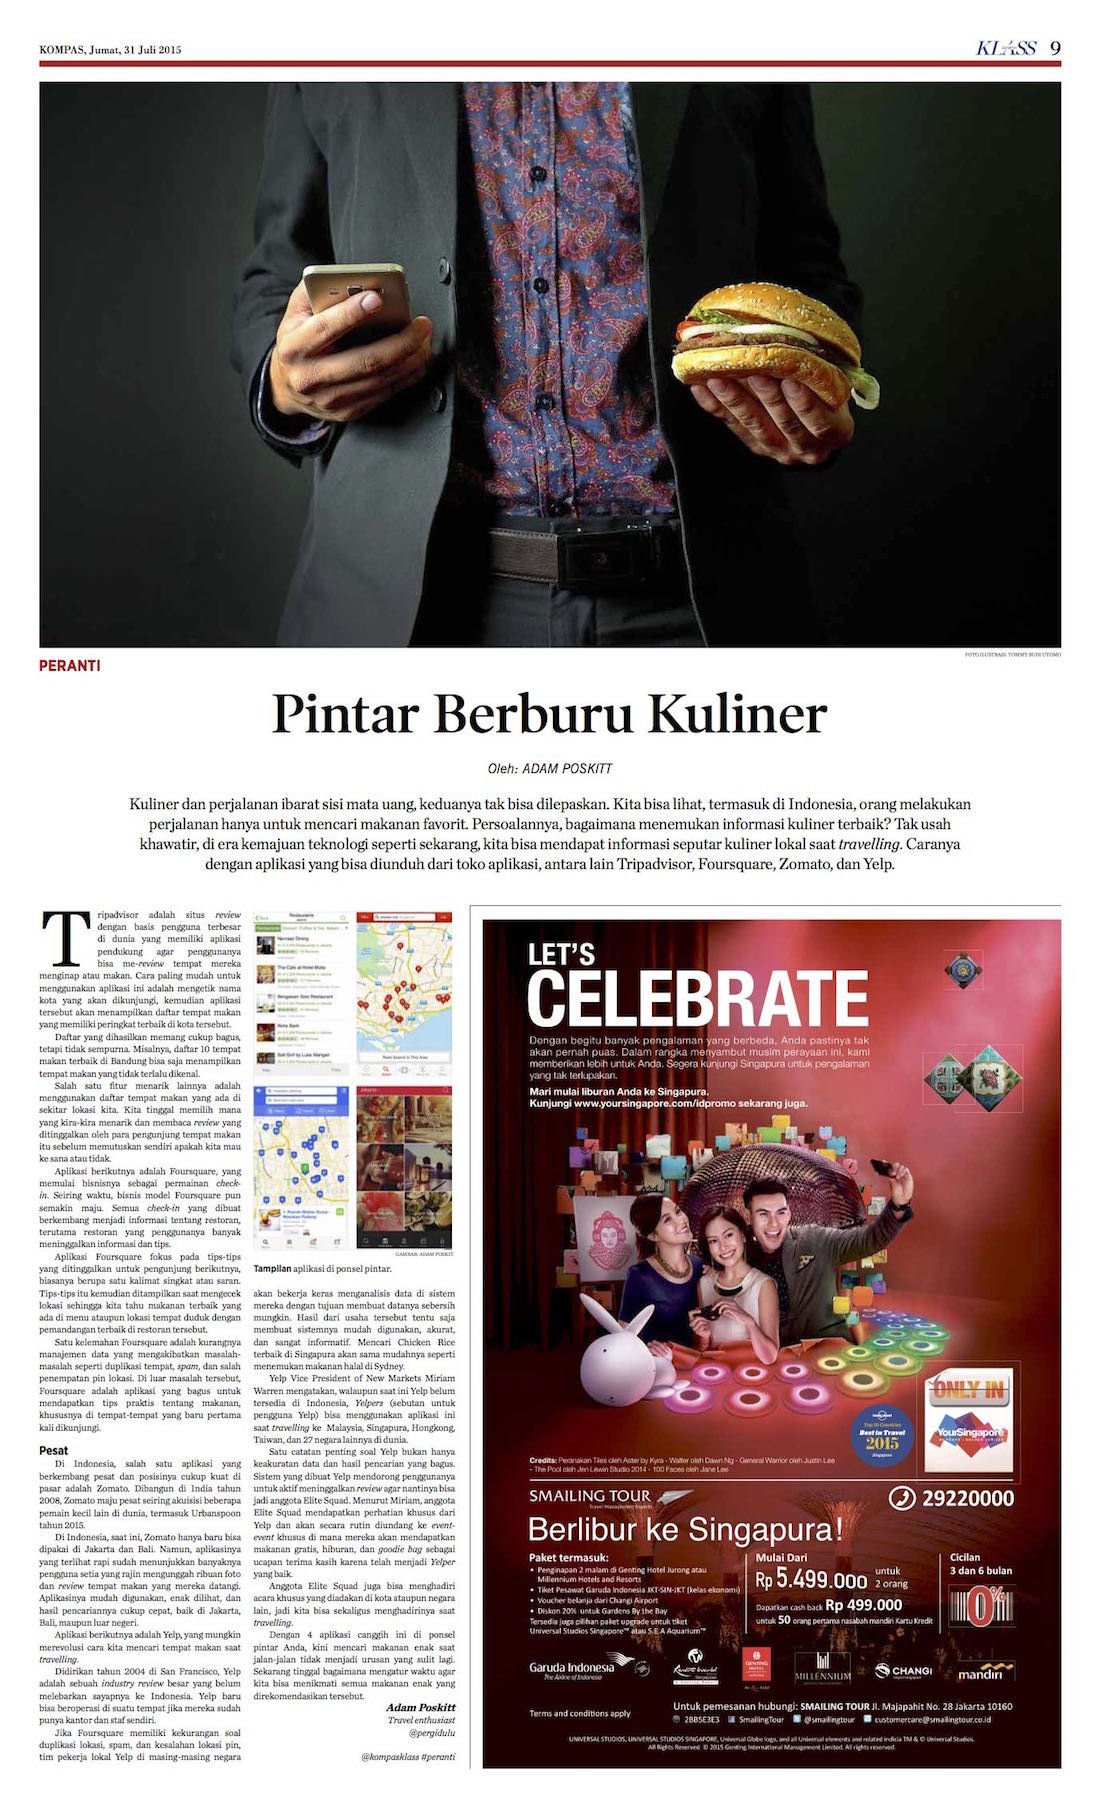 Restaurant Review Apps - Kompas Klass - Juli 2015